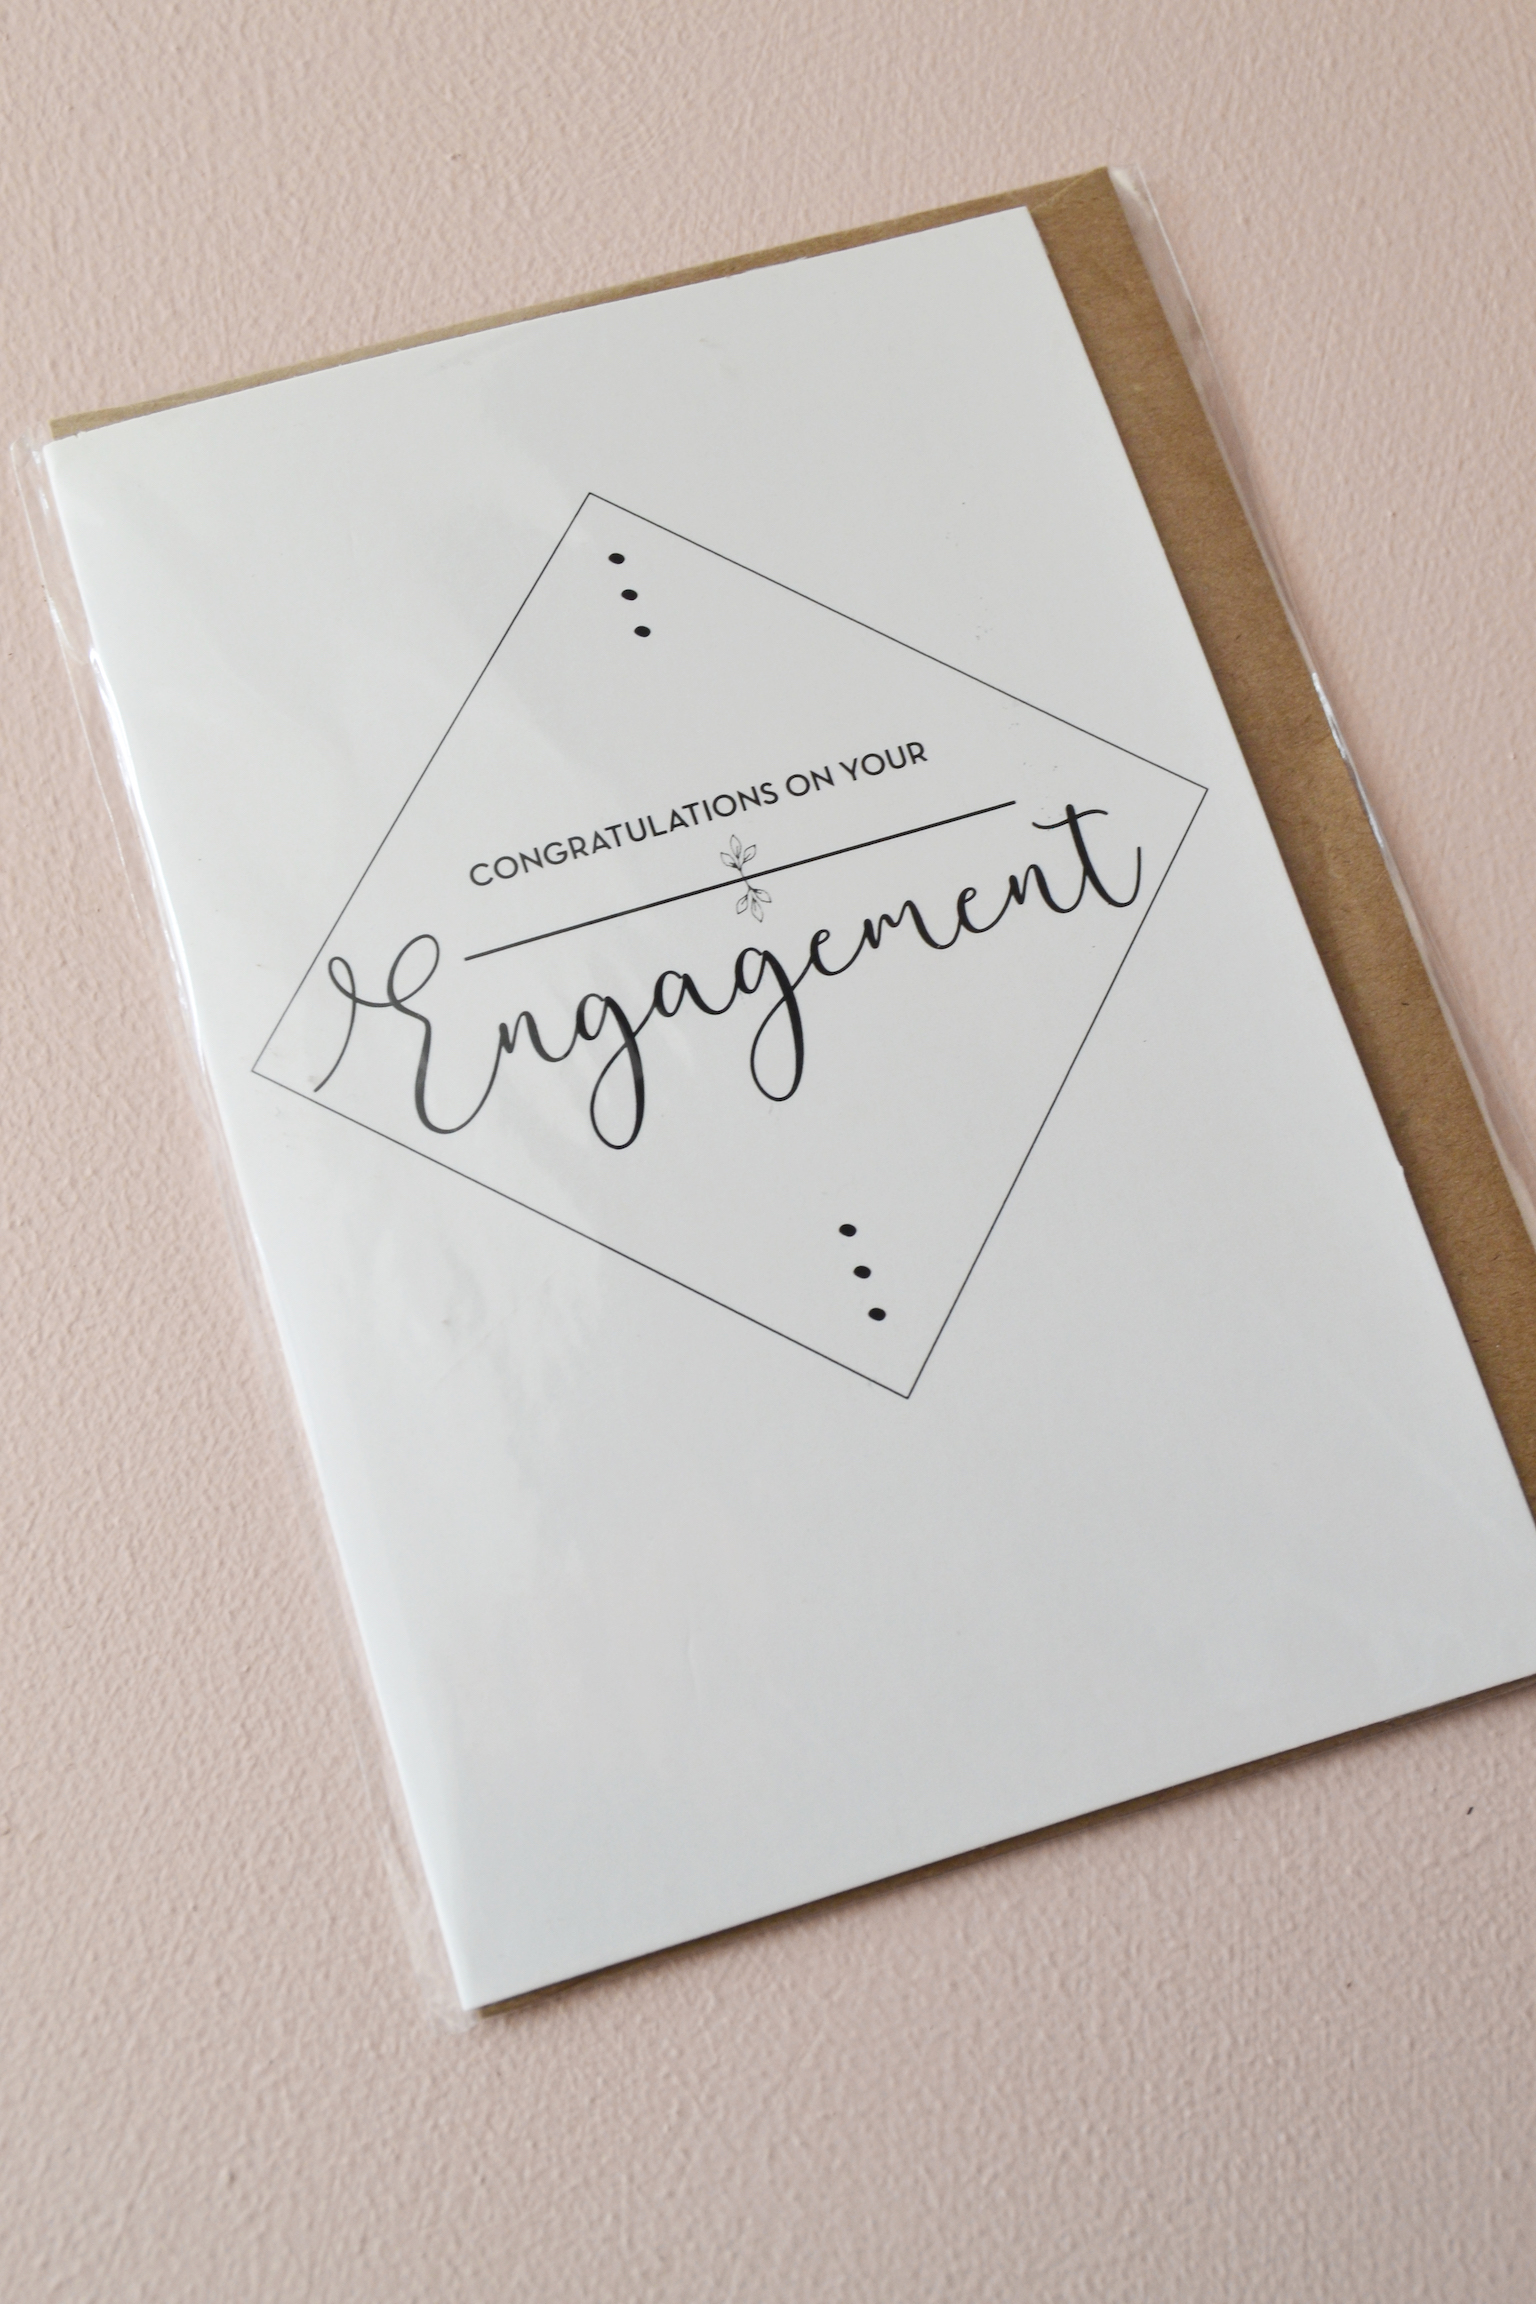 Congratulations On Your Engagement Greeting Card Loca Bridal